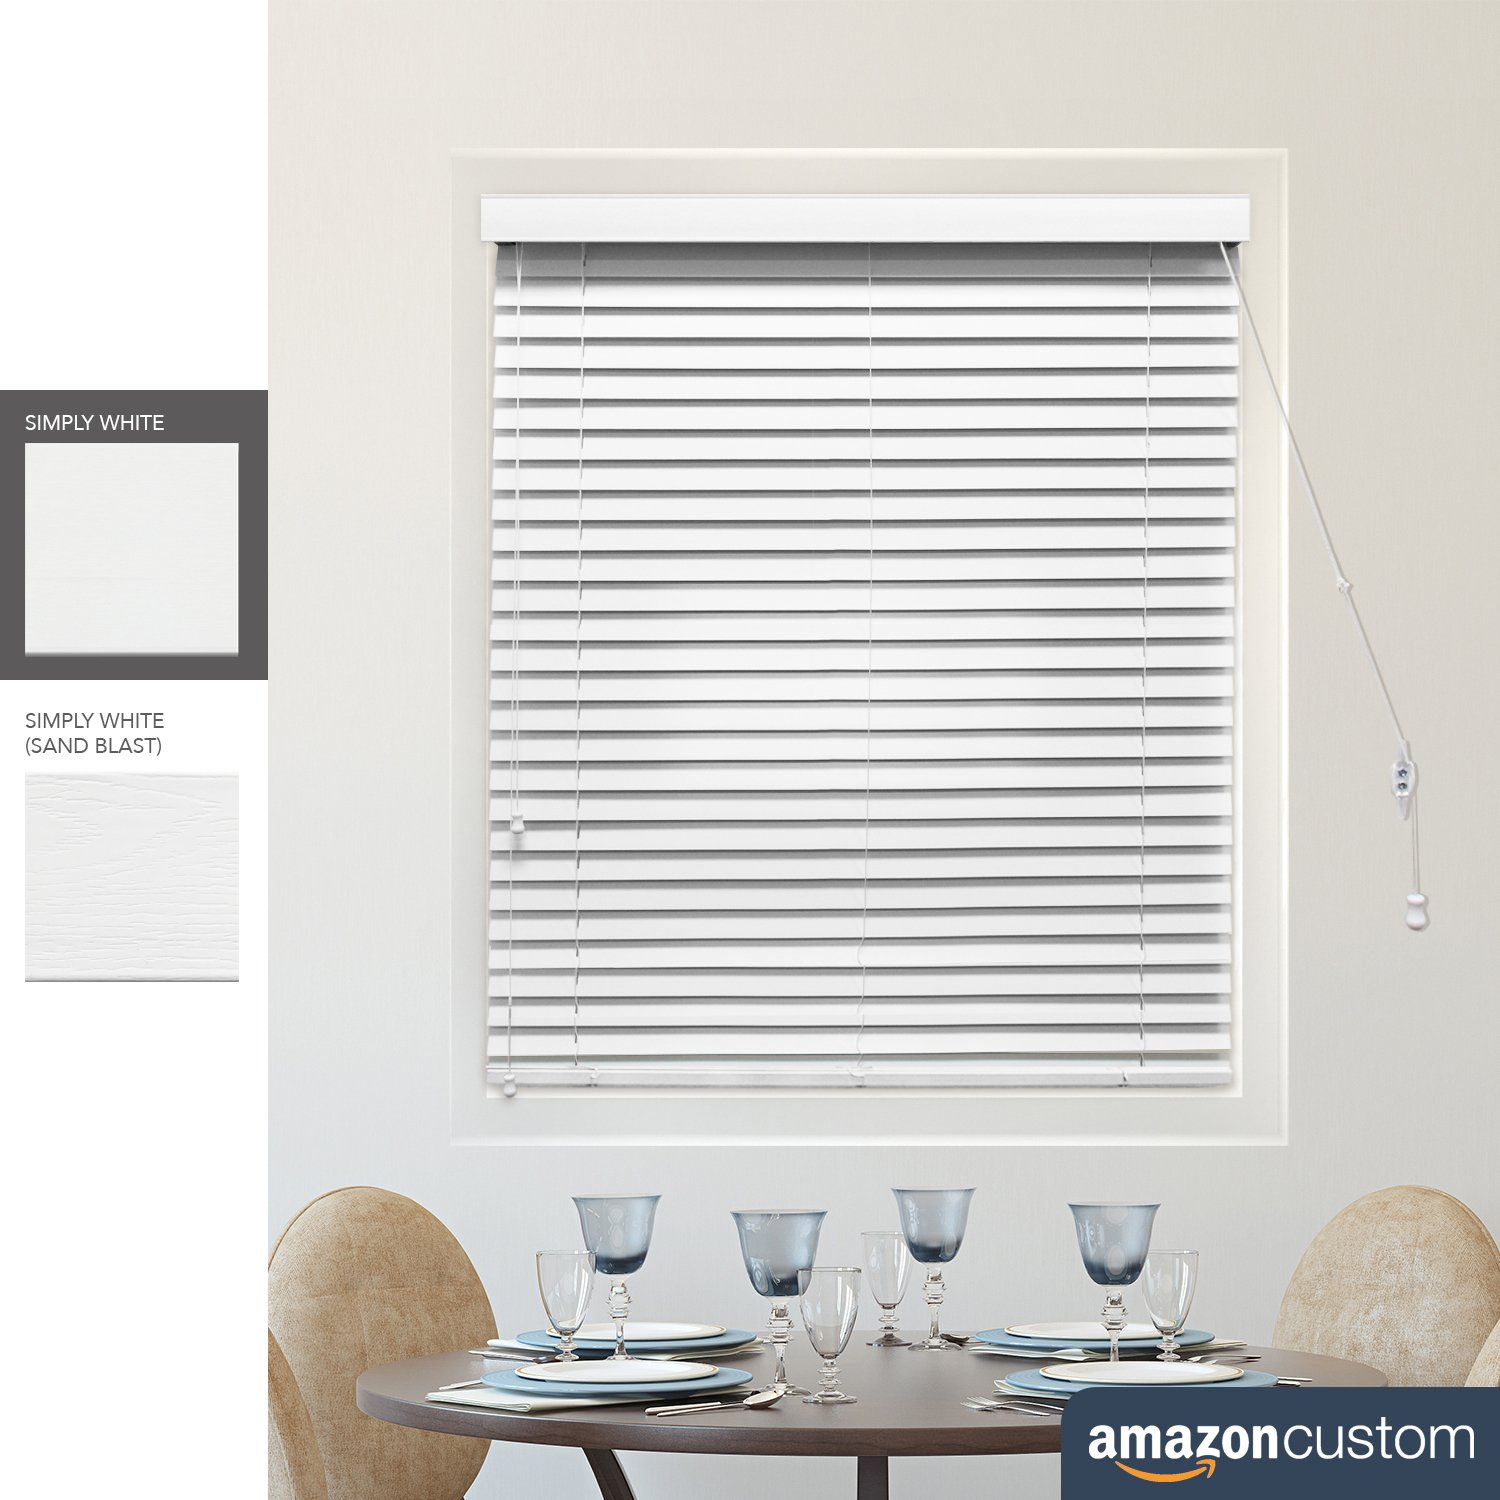 CHICOLOGY Custom Made Faux Wood Venetian 2-in. Slat Blinds, Simply White. W:31-36 in, H:48-60 in